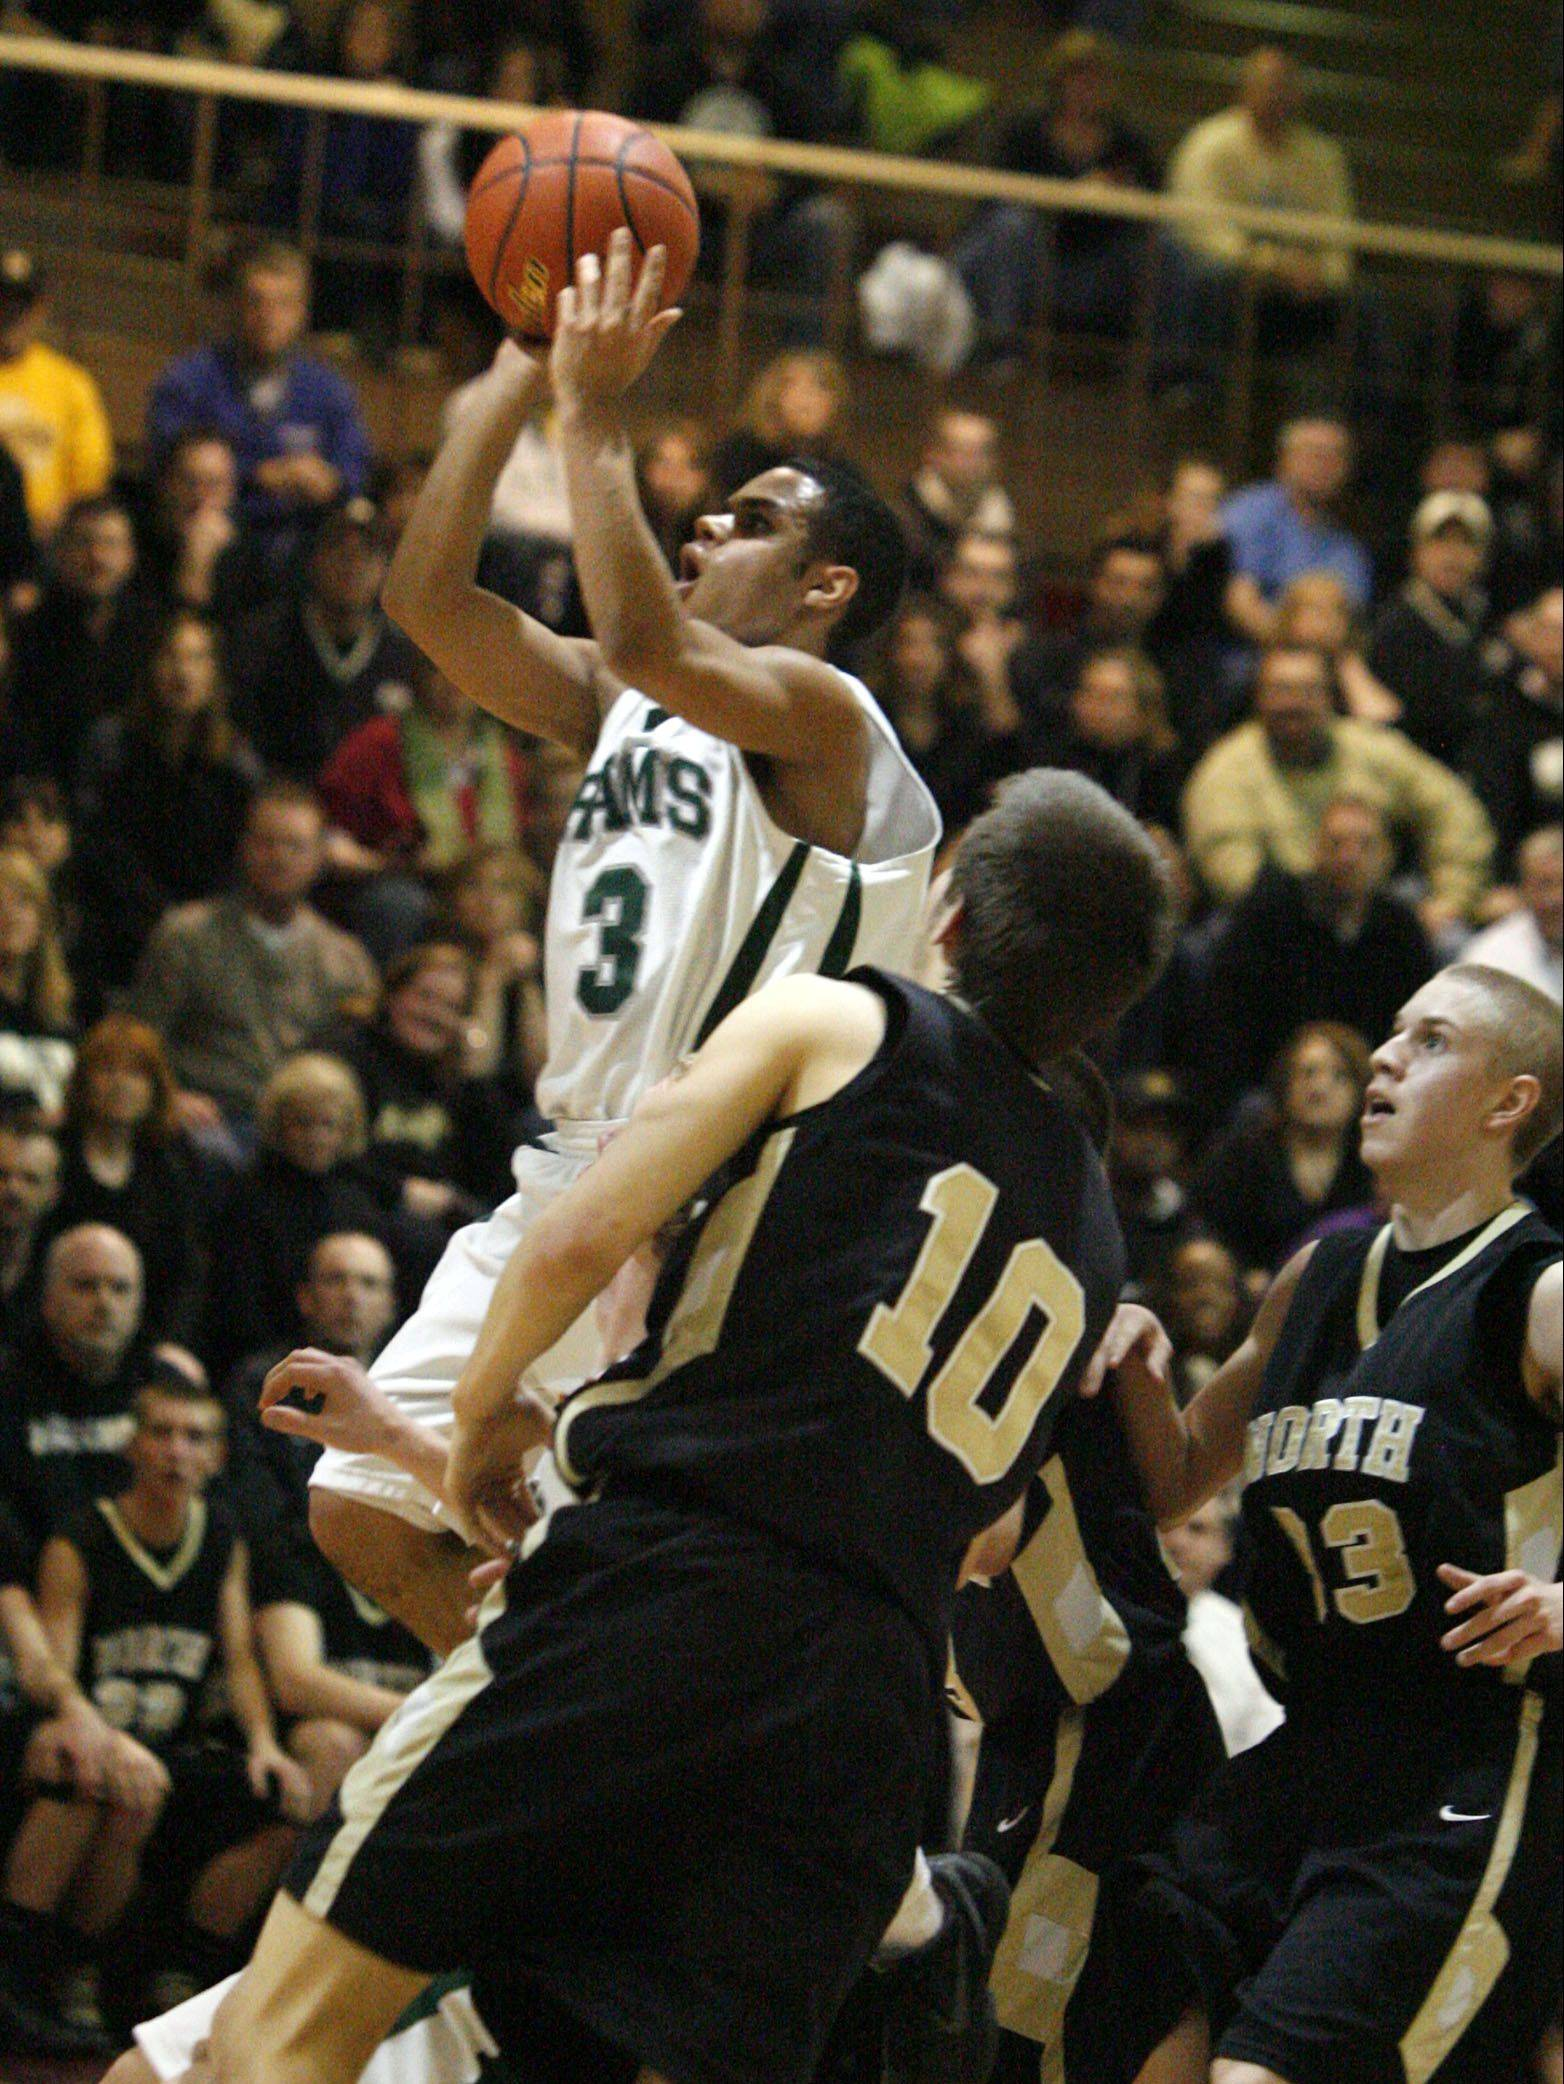 George Leclaire/gleclaire@dailyherald.com Grayslake Central's Jordan Taylor (all-Small) shoots past Grayslake North defender A.J. Fish (all-Junior) in Class 3A regional final play at Antioch on Friday.